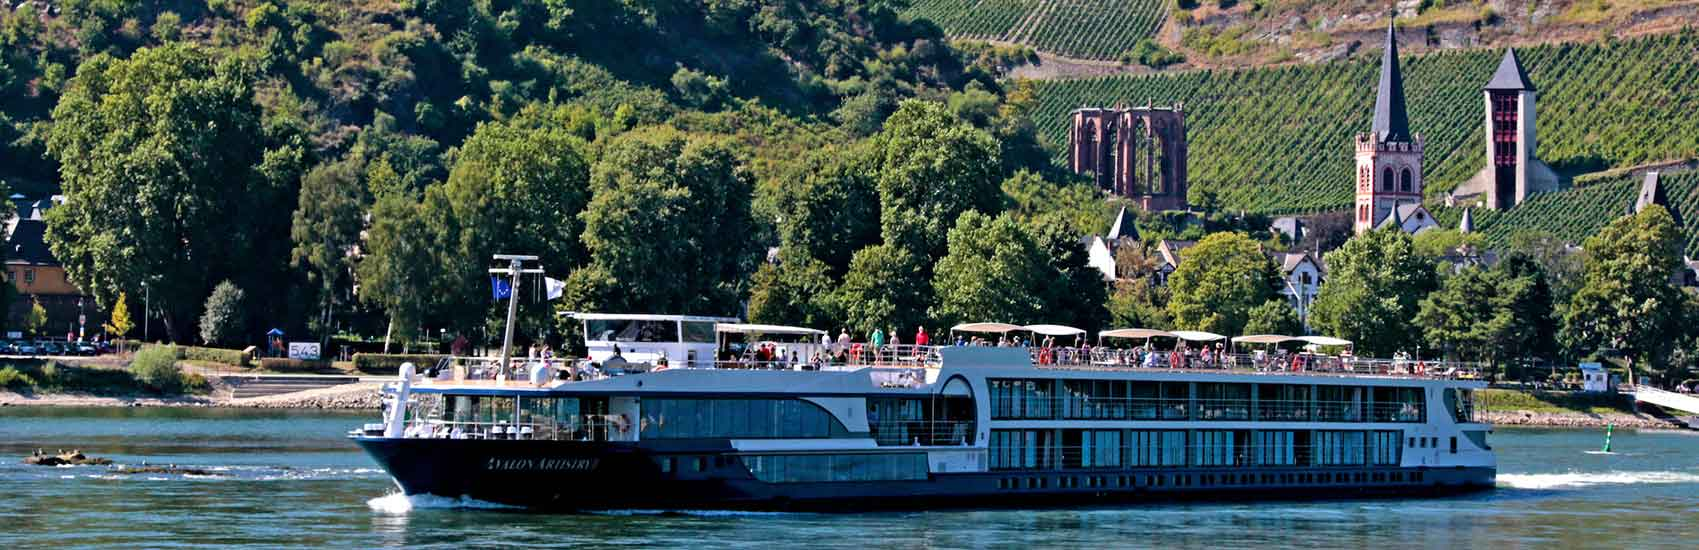 Exclusive Virtuoso Offer with AmaWaterways 0